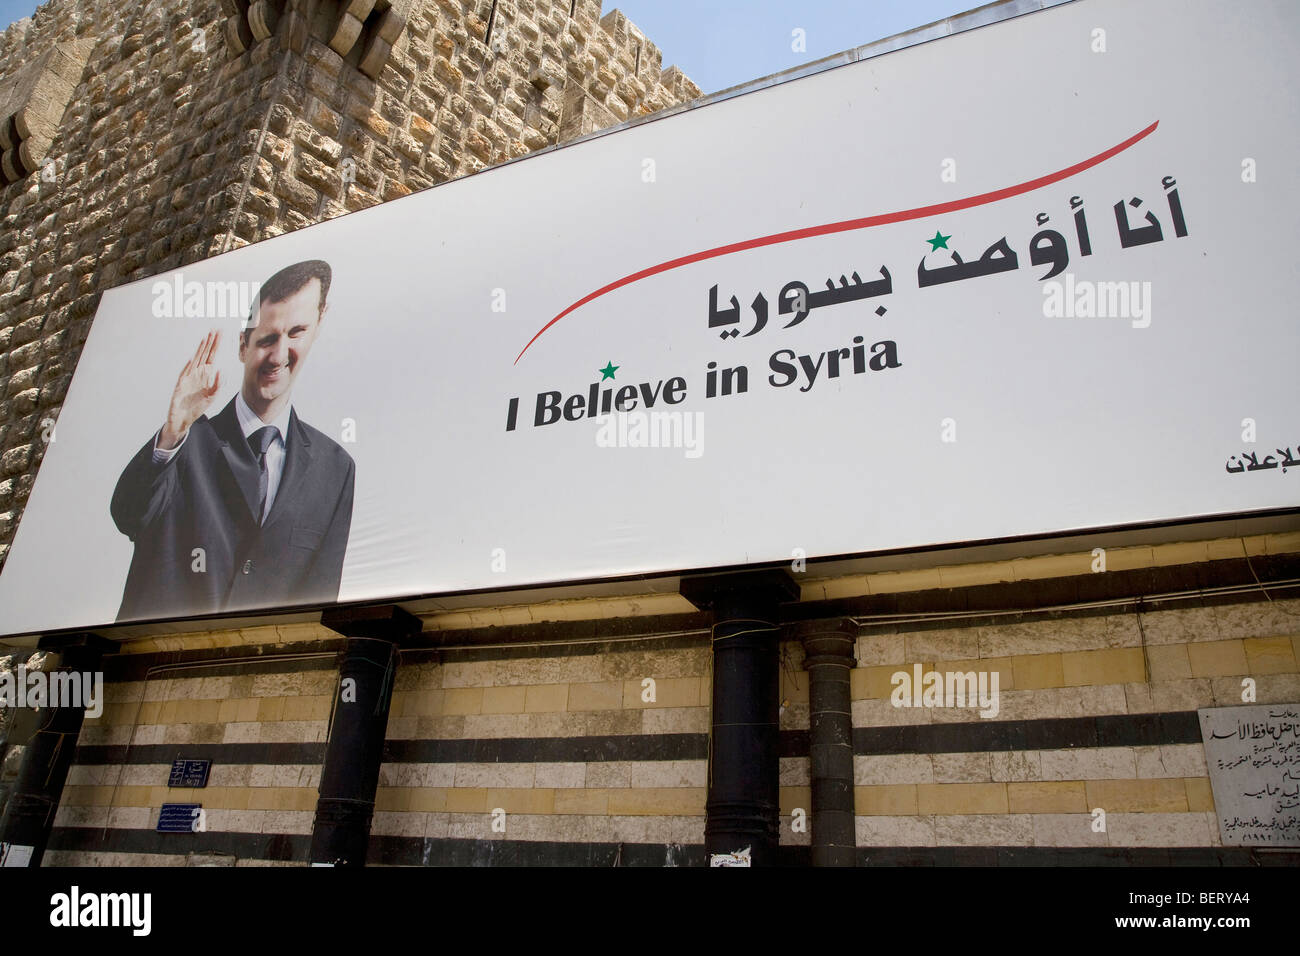 Poster, sign, billboard, banner with Bashar al-Assad smiling and saluting, Damascus, Syria, Middle East - Stock Image